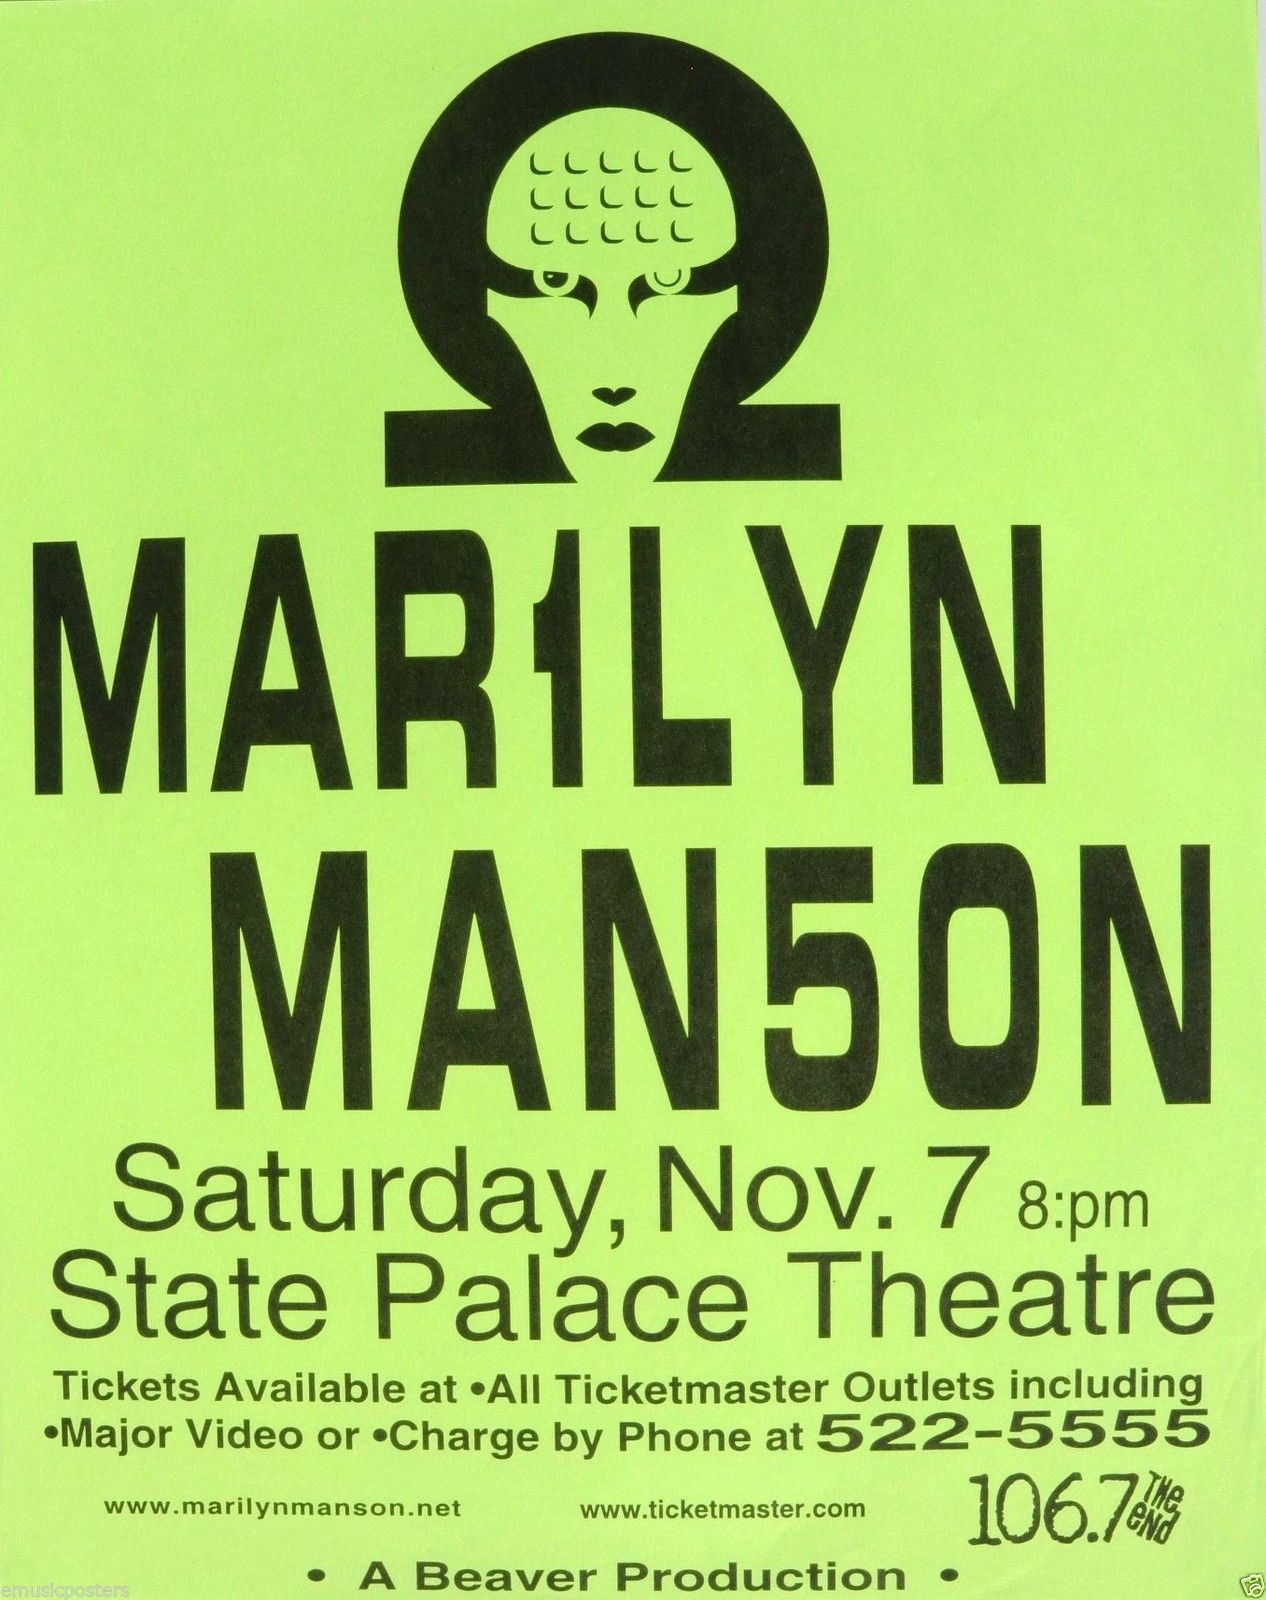 November 7, 1998 performance at State Palace Theatre in New Orleans, Louisiana, USA.